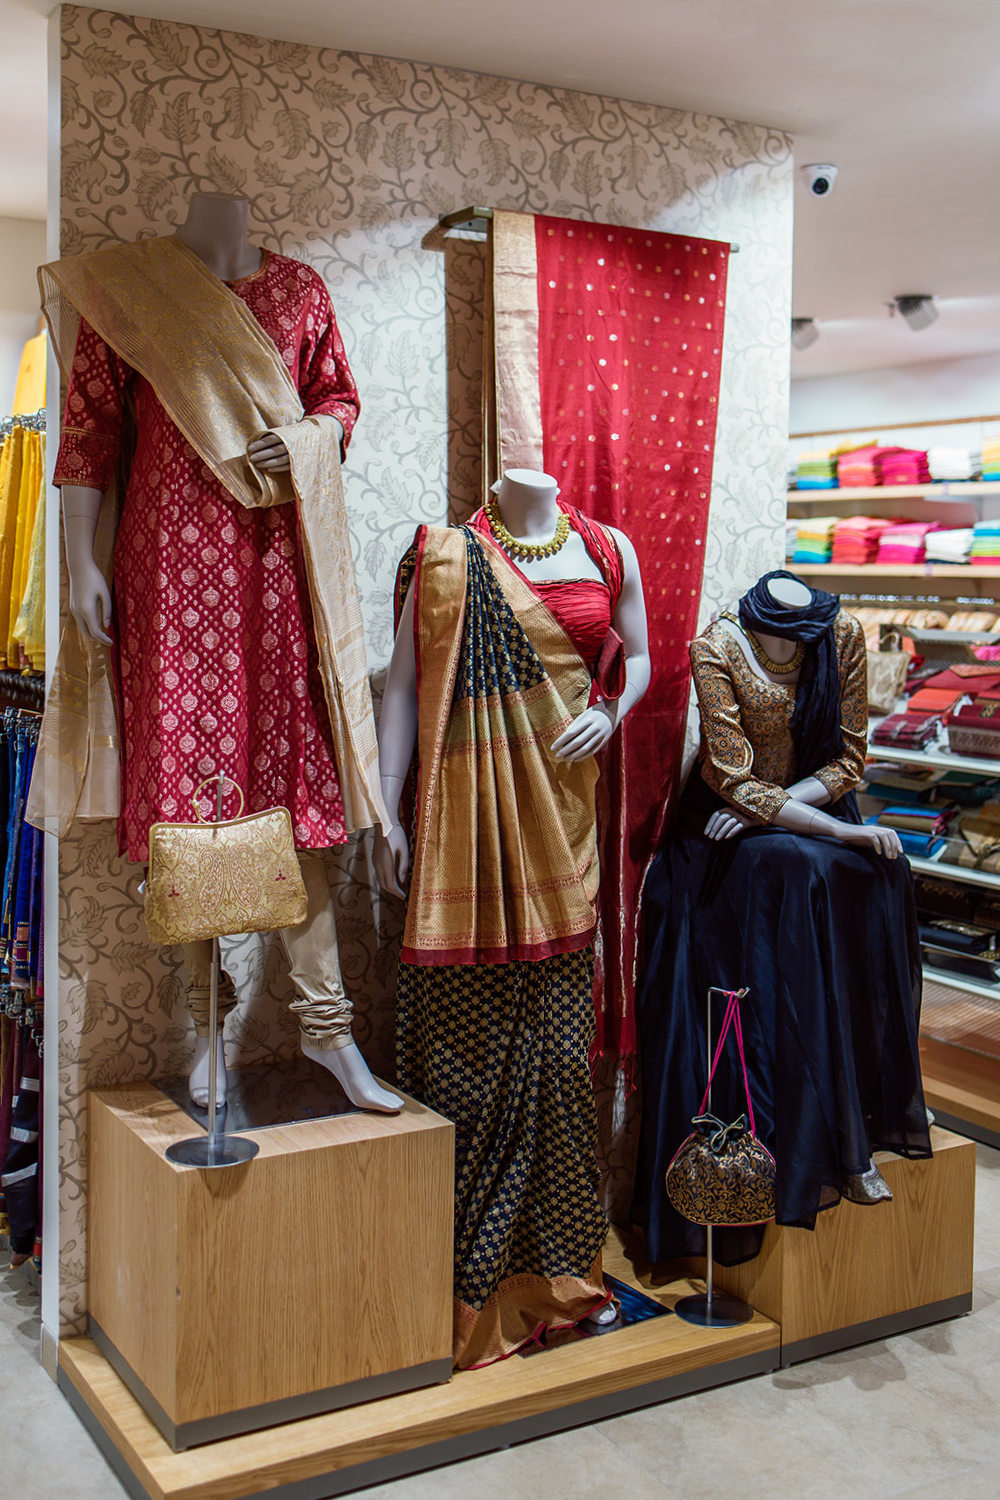 FabIndia-The-FabIndia-Experience-Center-AienJamir-10